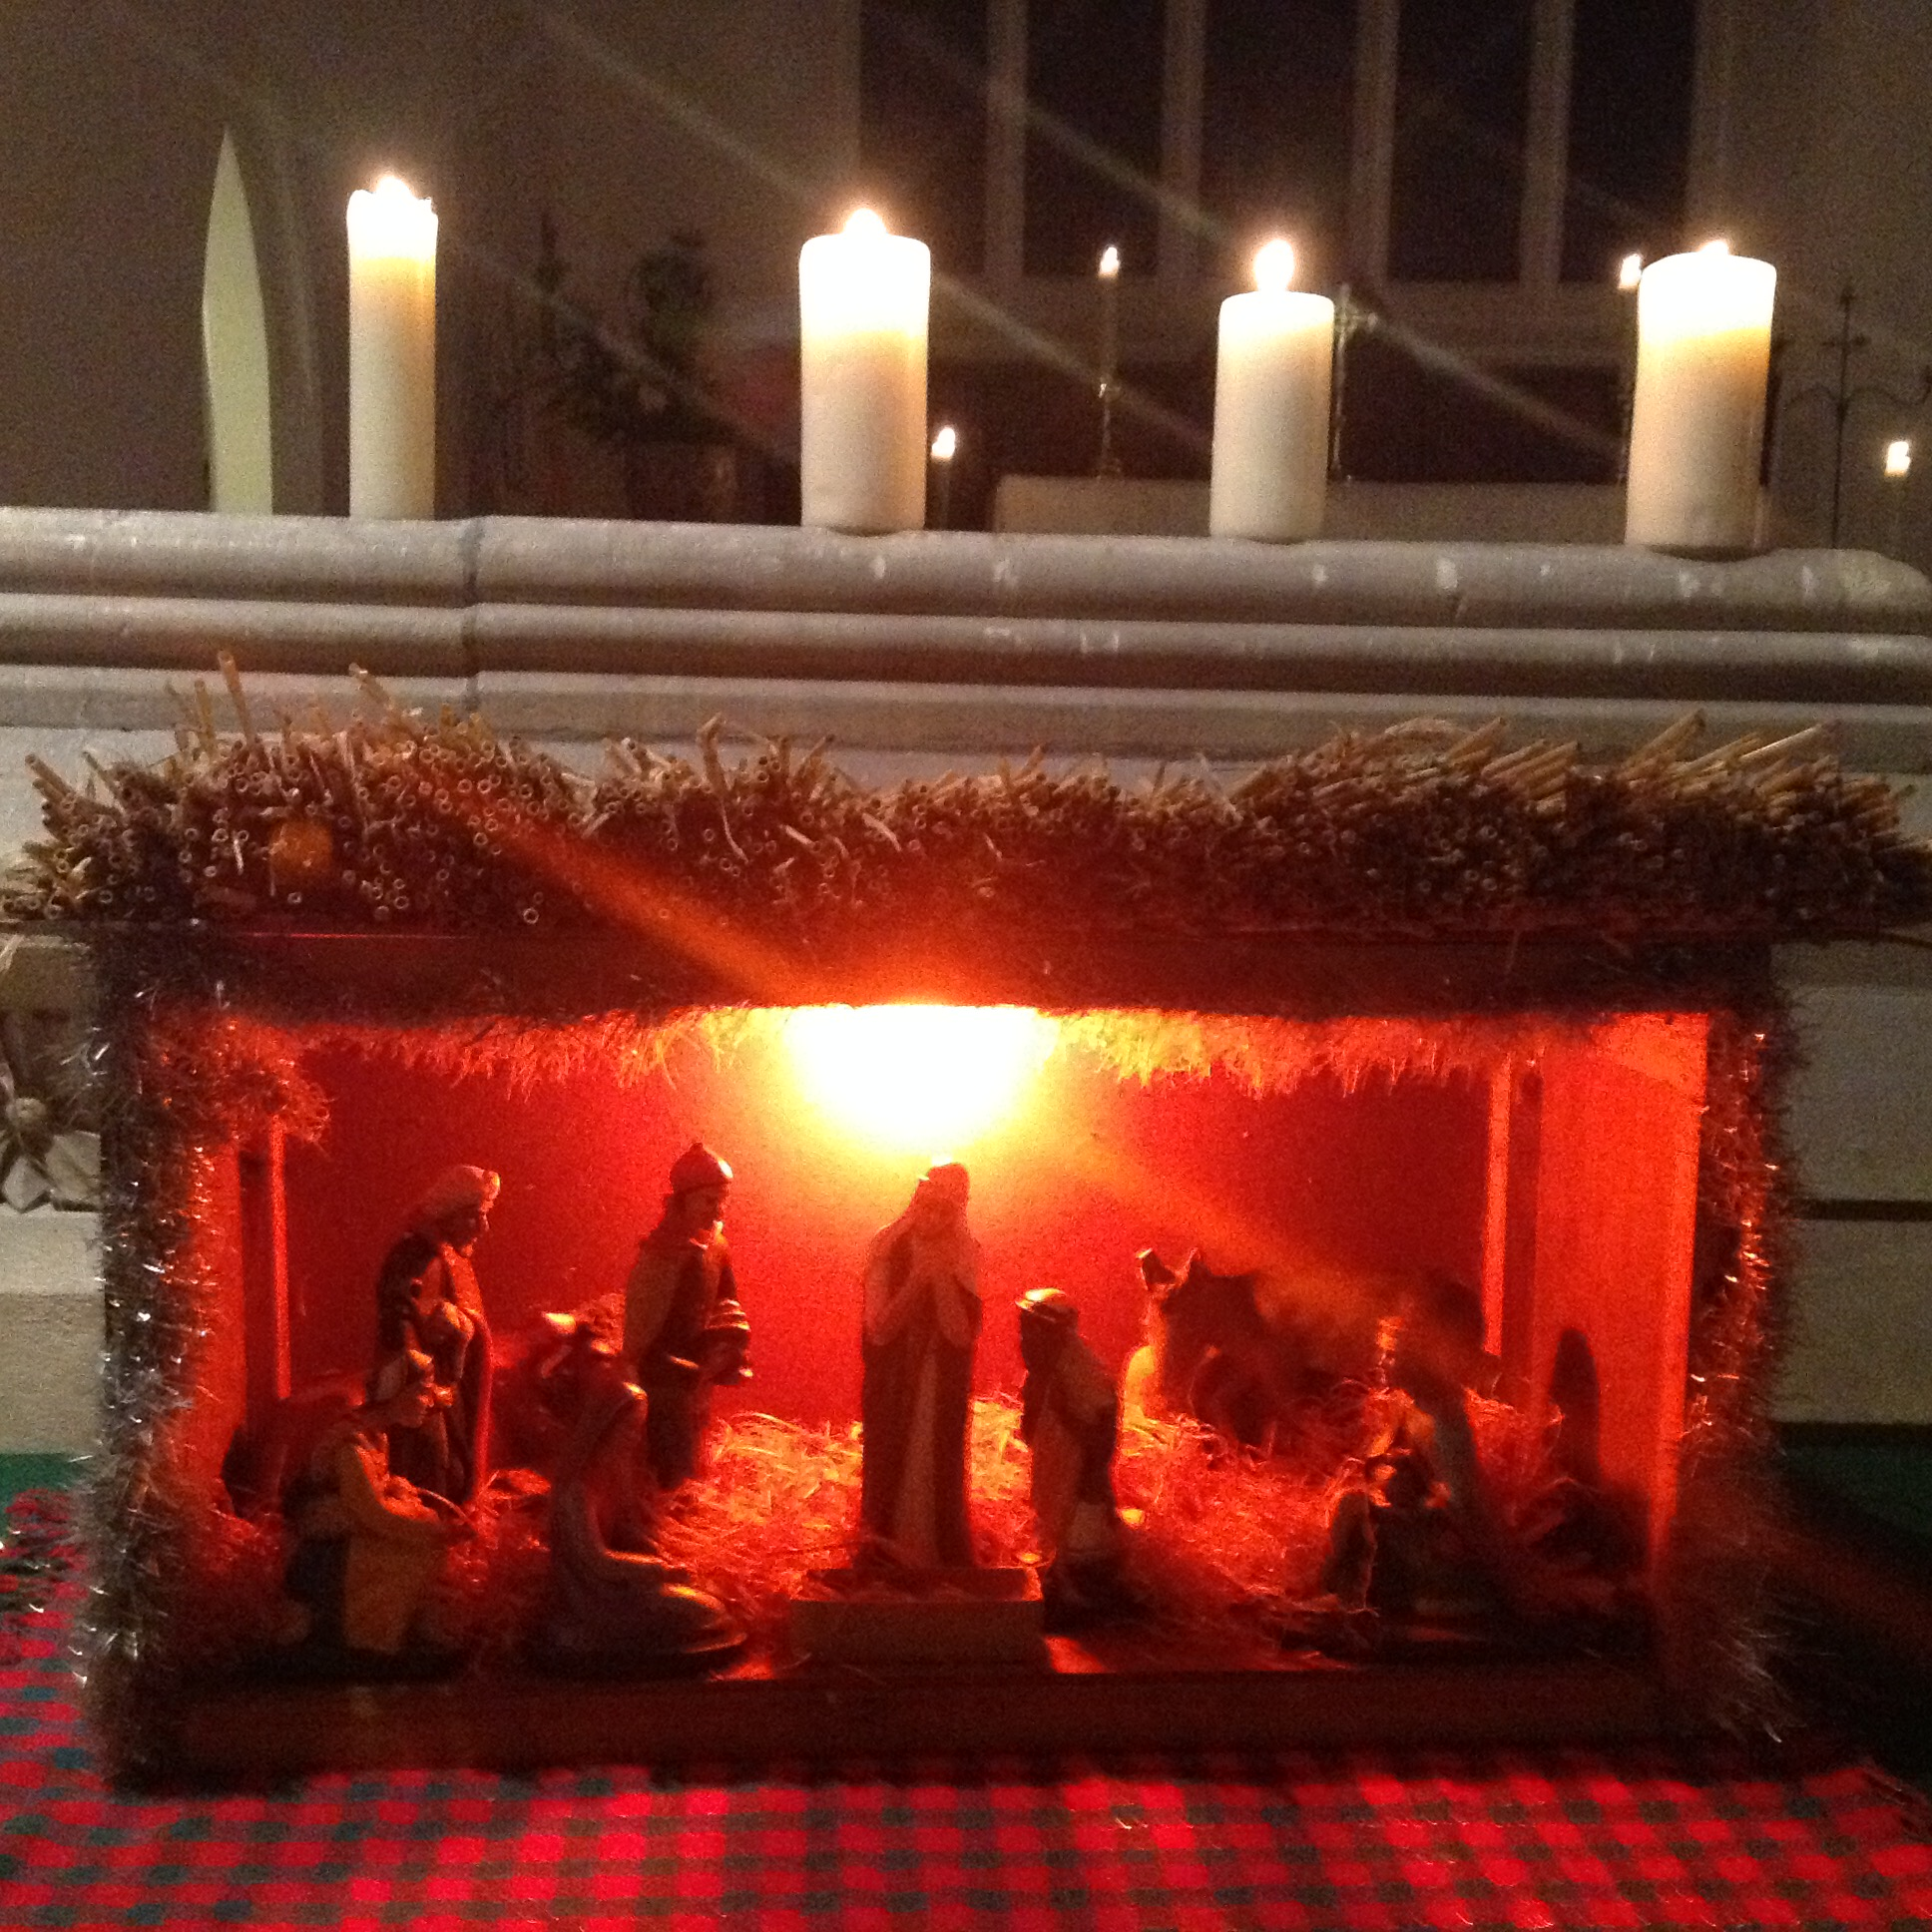 The nativity stable lit with candles